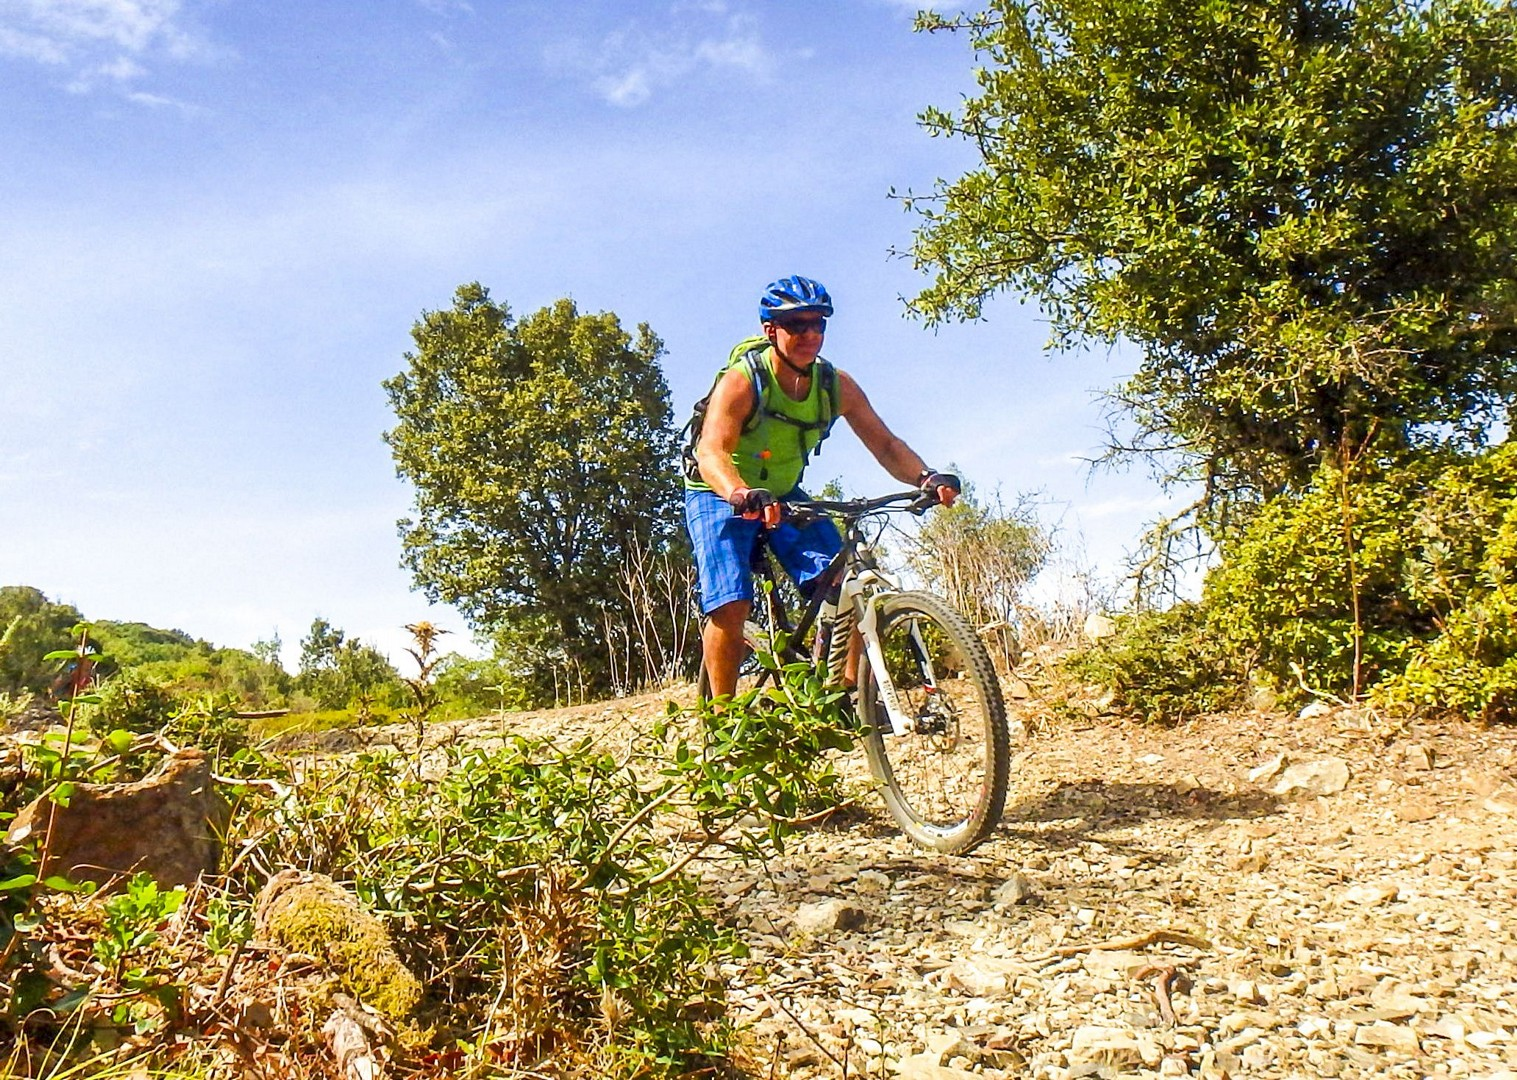 high-quality-mountain-biking-coast-to-coast-self-guided.jpg - Italy - Sardinia - Coast to Coast - Self-Guided Mountain Bike Holiday - Italia Mountain Biking